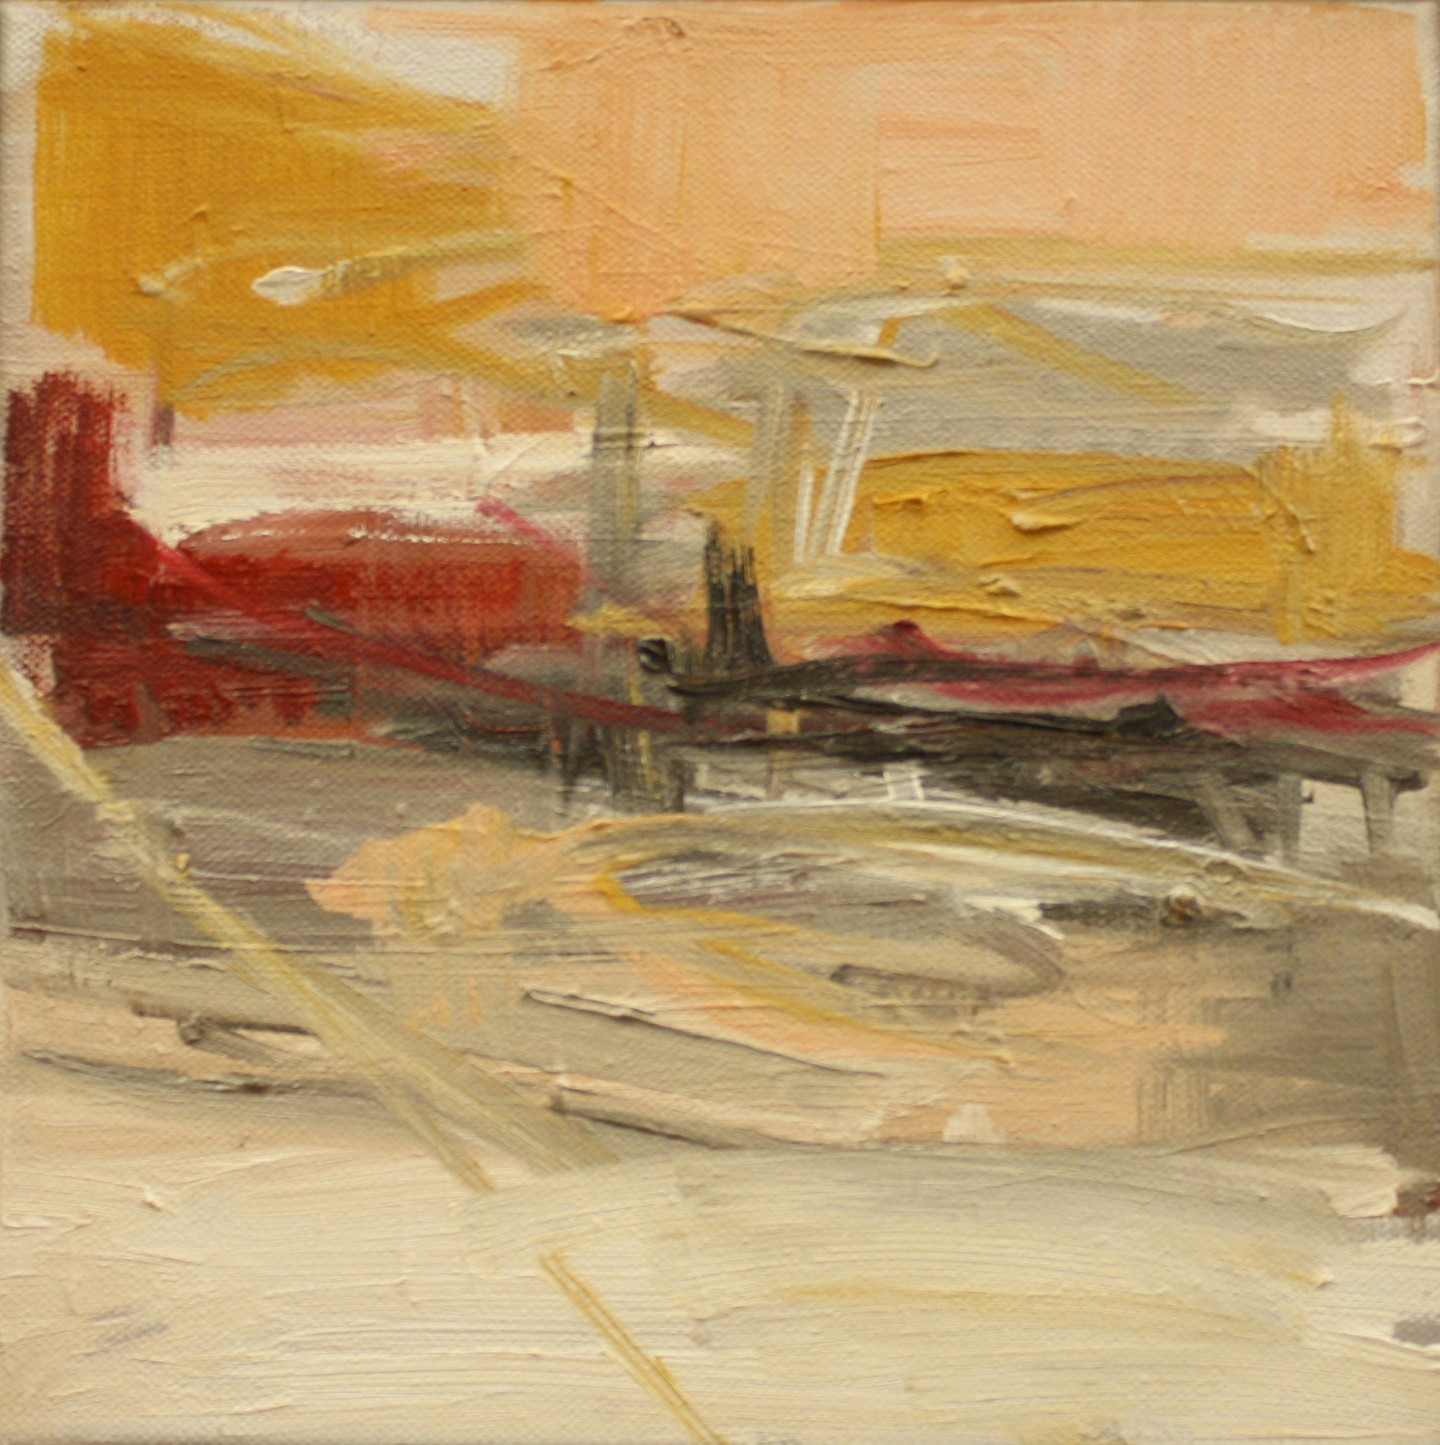 Painting_62_Study of a Primitive Horizon, oil on canvas, 10 x 10 in.JPG